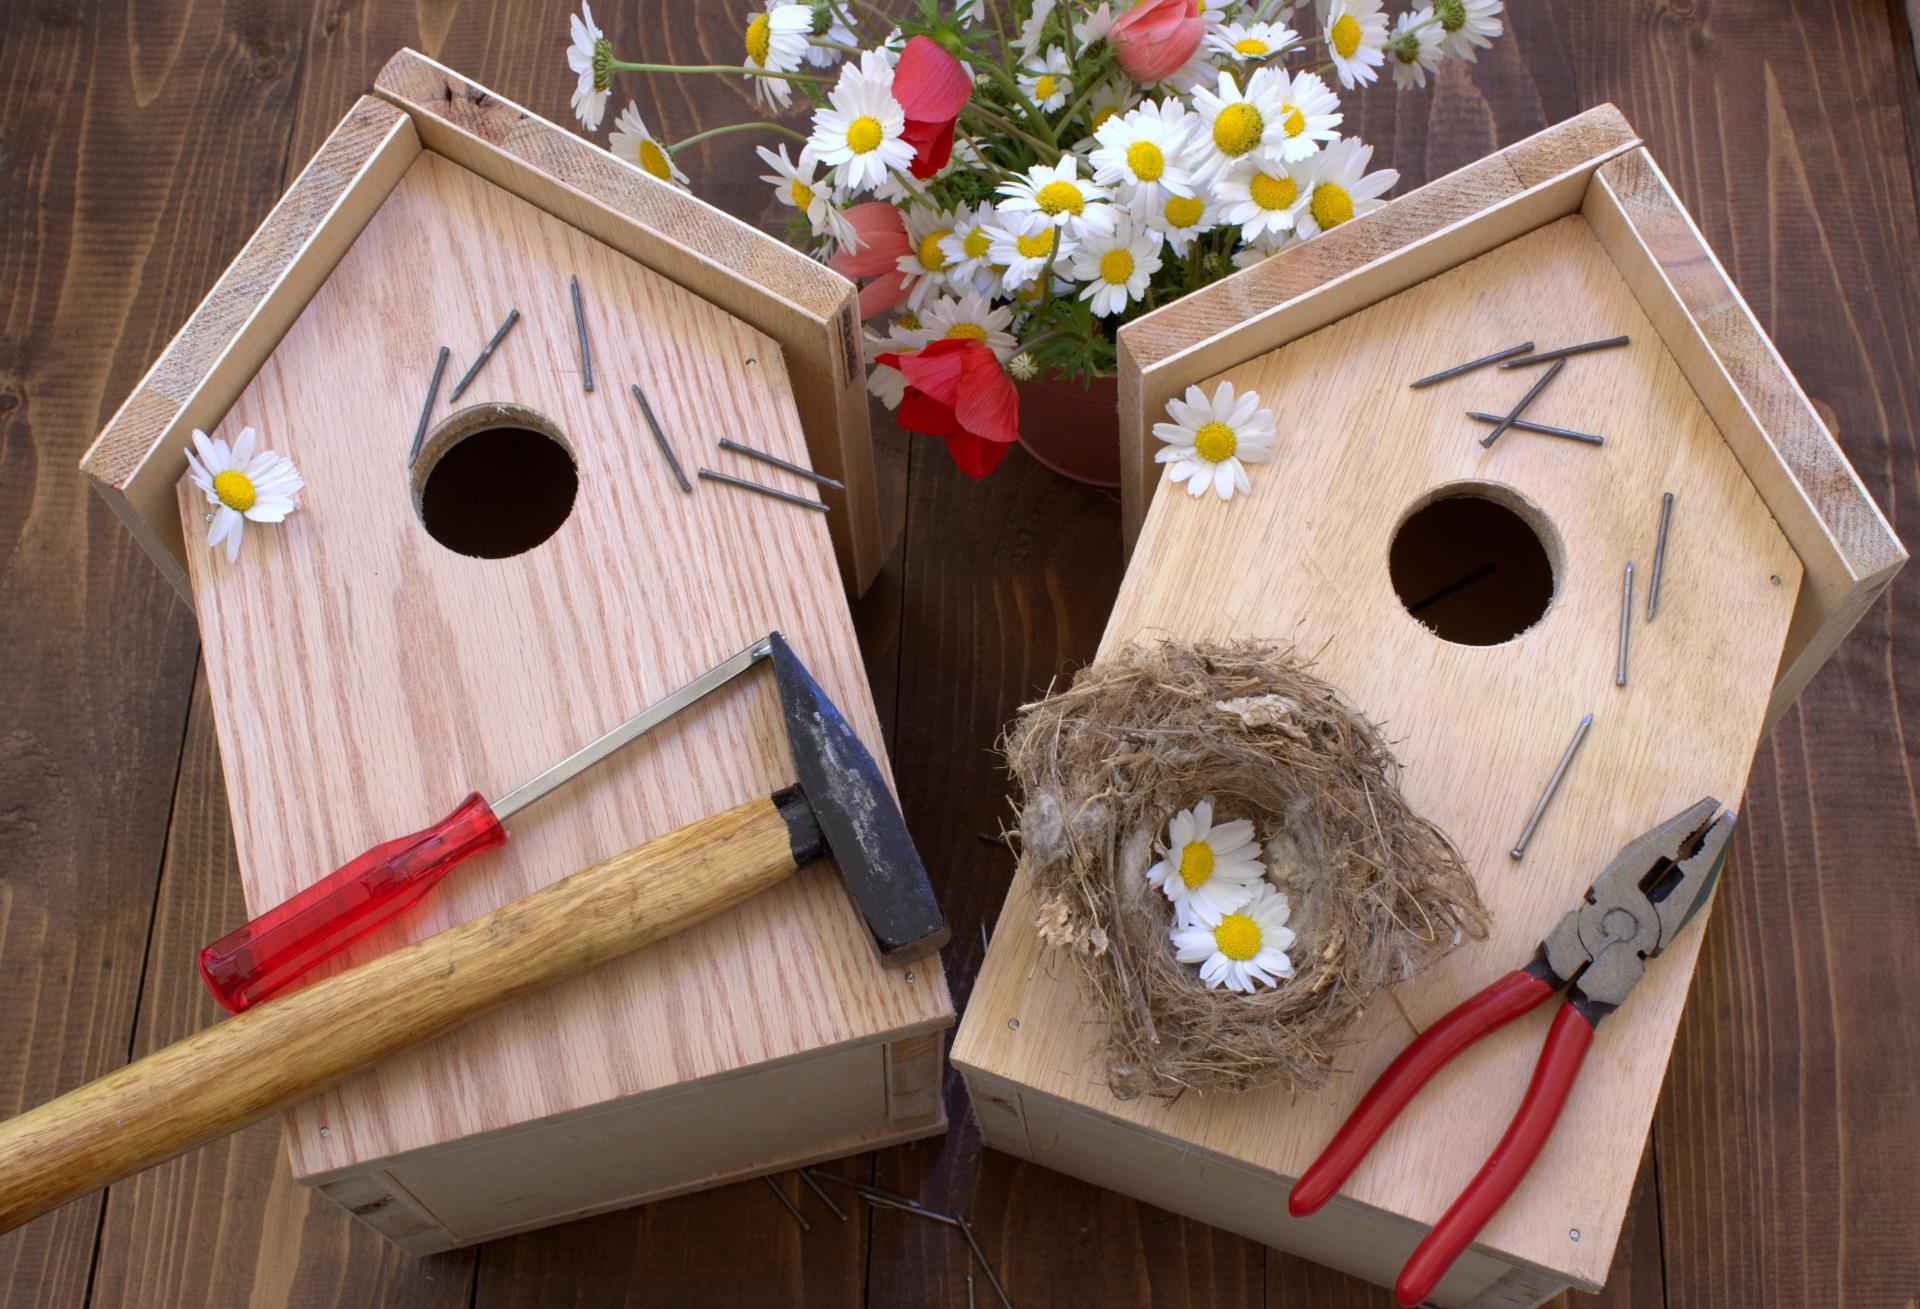 Birdhouse with tools